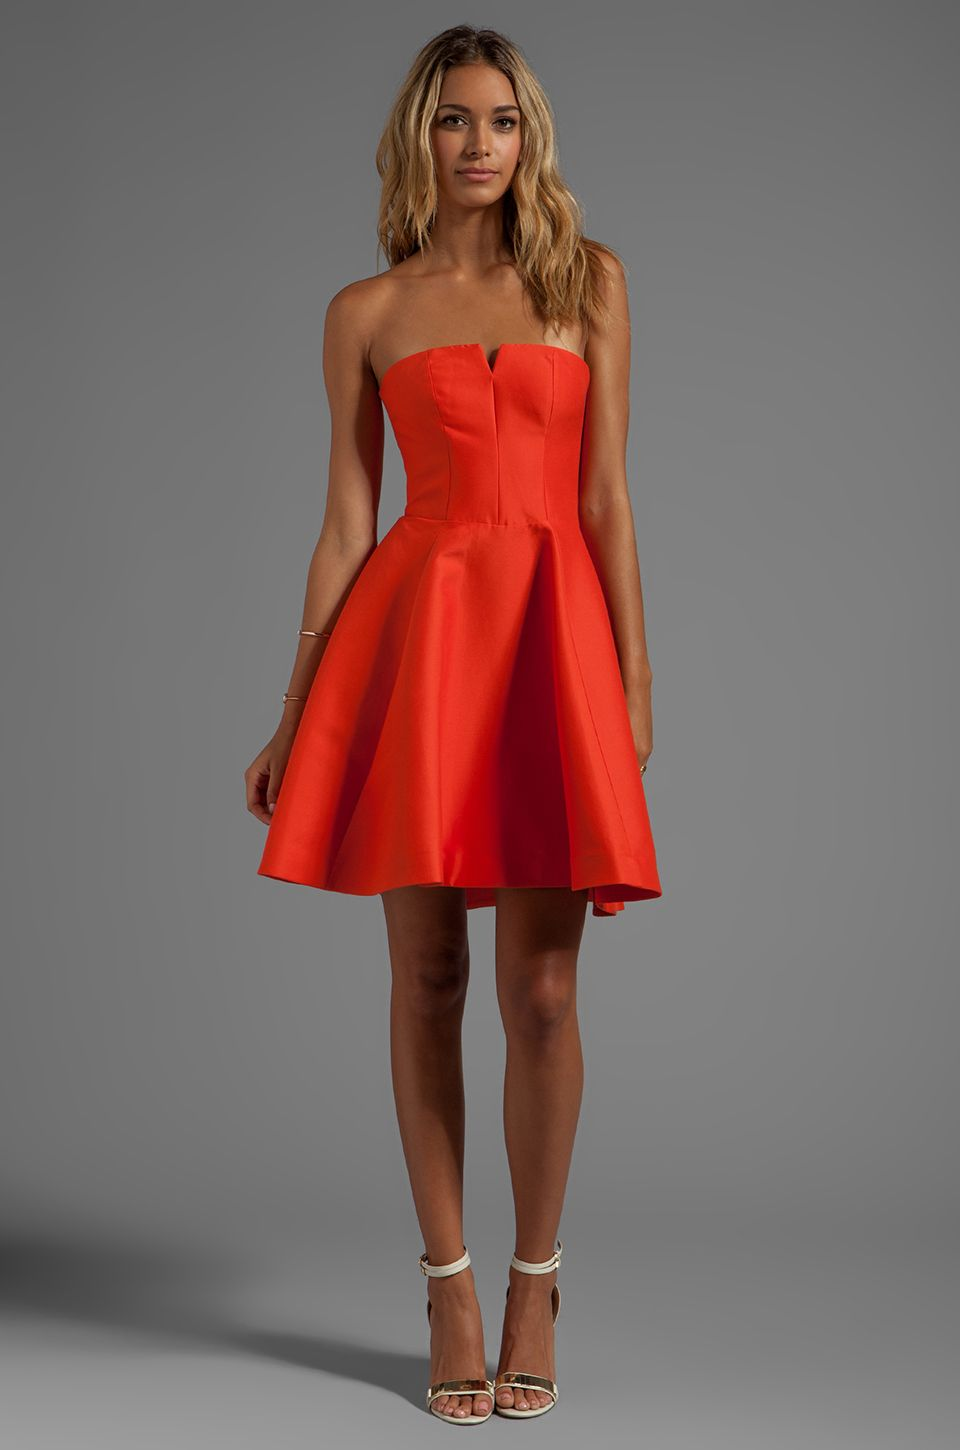 Halston Heritage Strapless Structured Dress With Flare Skirt in ...